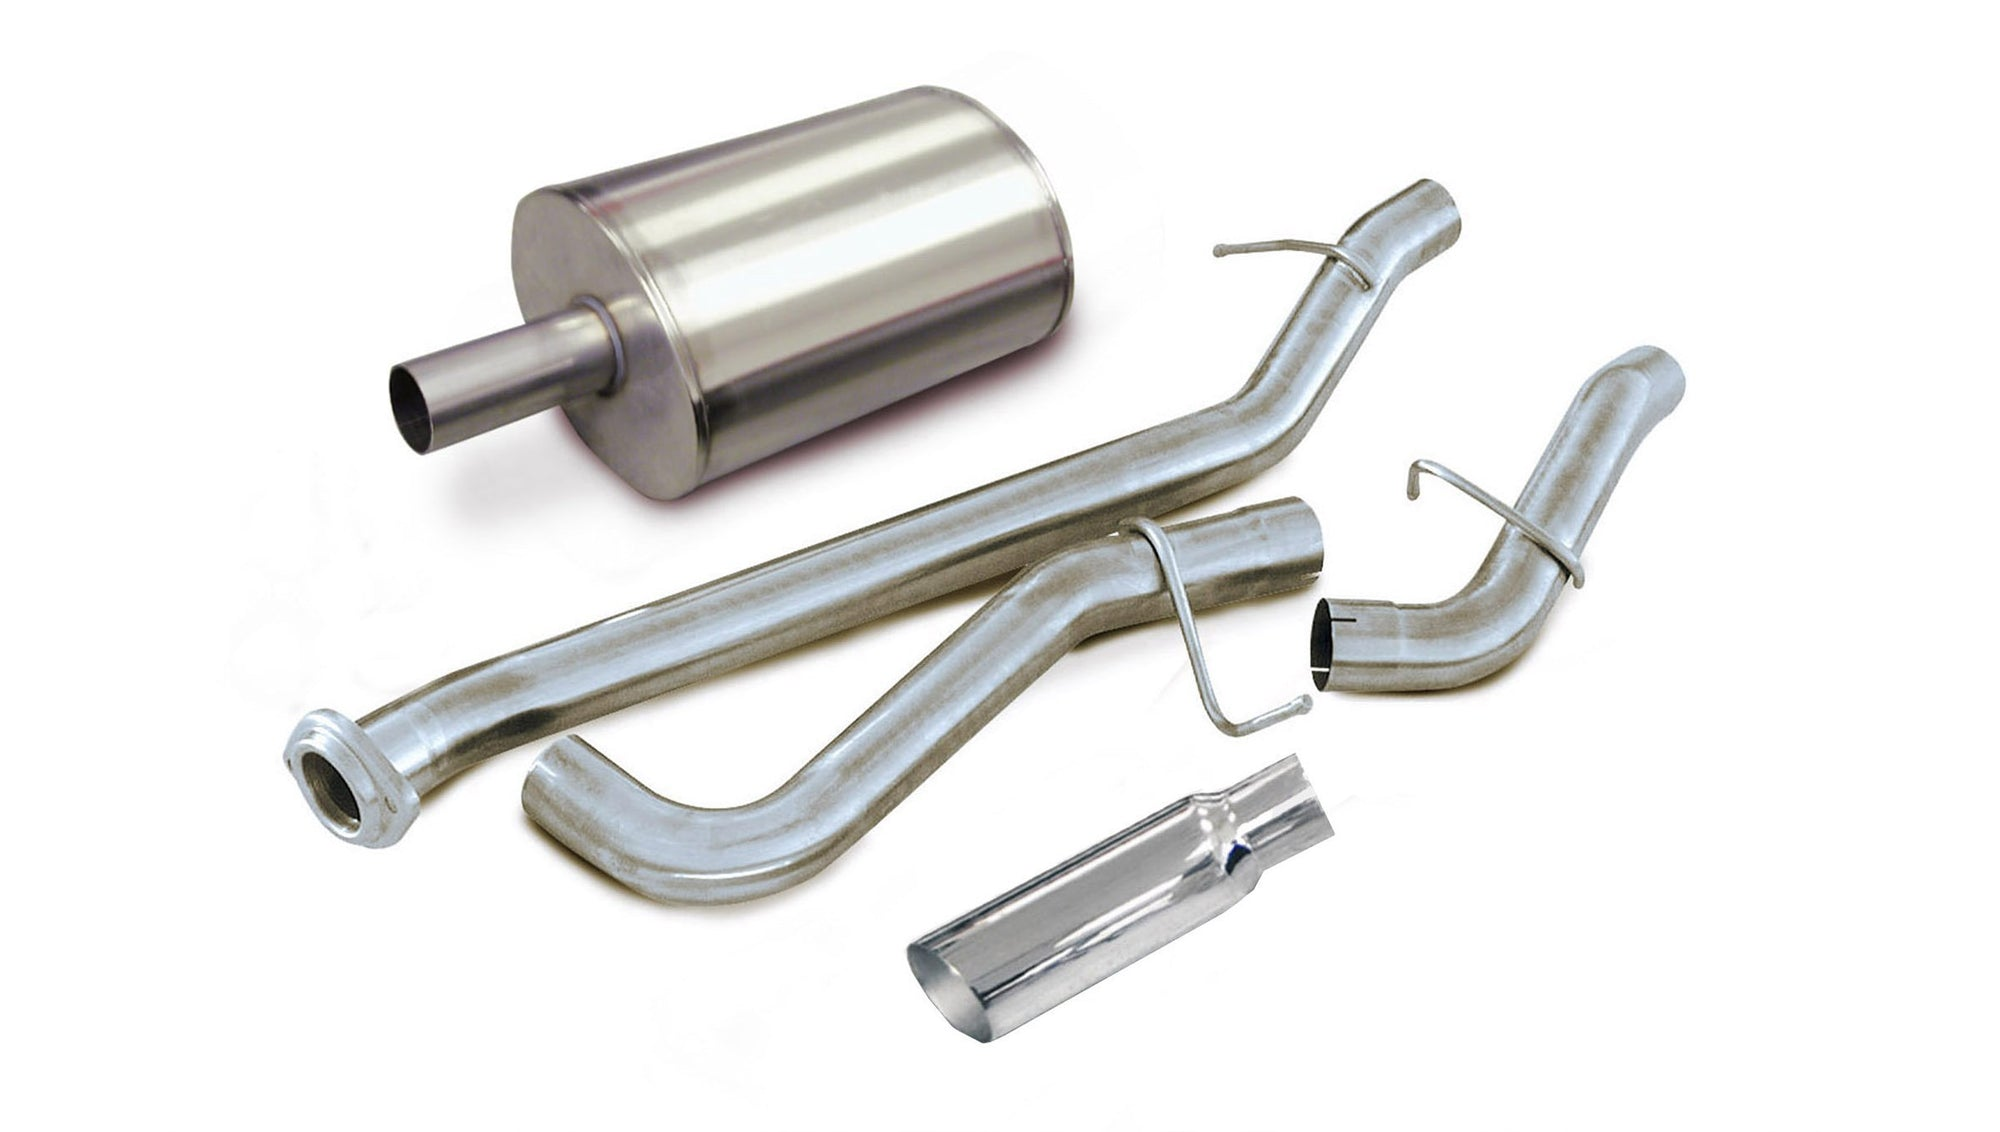 "dB Cat-Back Exhaust Polished / Sport / Single Side - Twin 4.0in 1999-2006 Chevrolet Silverado, GMC Sierra, 4.8L, 5.3L, 6.0L V8 3.0"" Single Side Exit Catback Exhaust System with 4.0"" Tip (24260) Sport Sound Level"